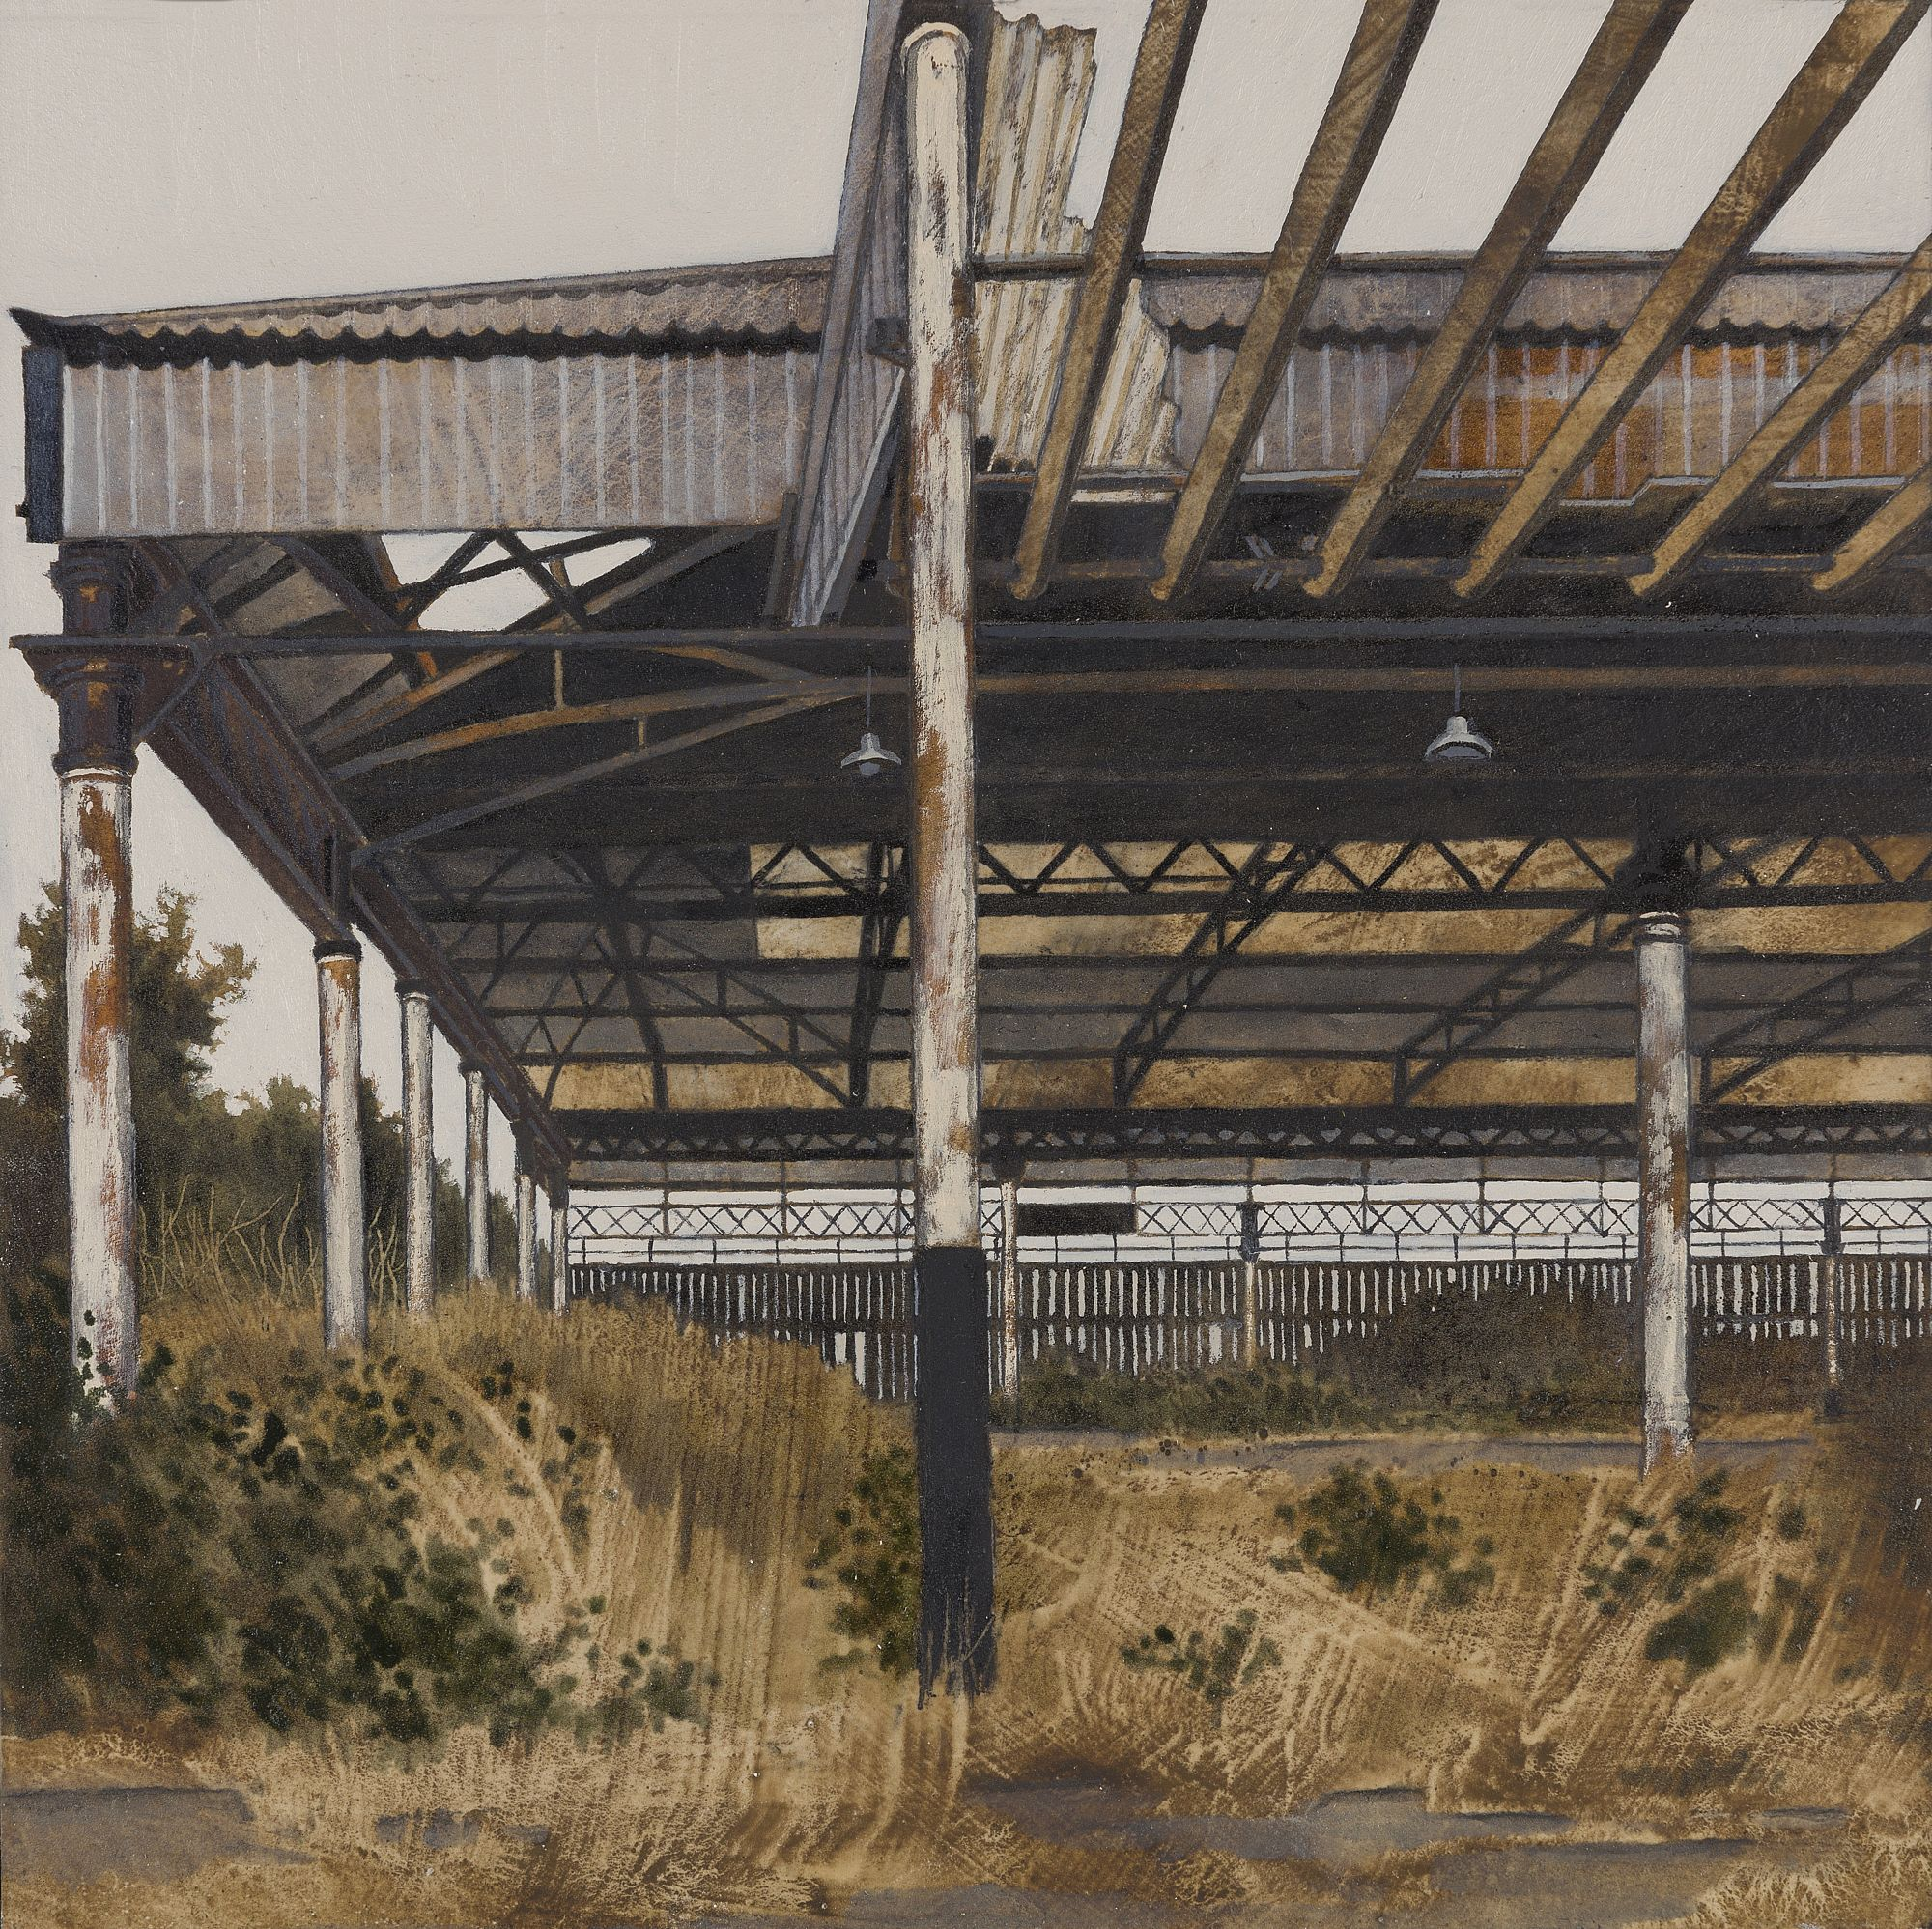 Cattle Shed  by Cate  Inglis